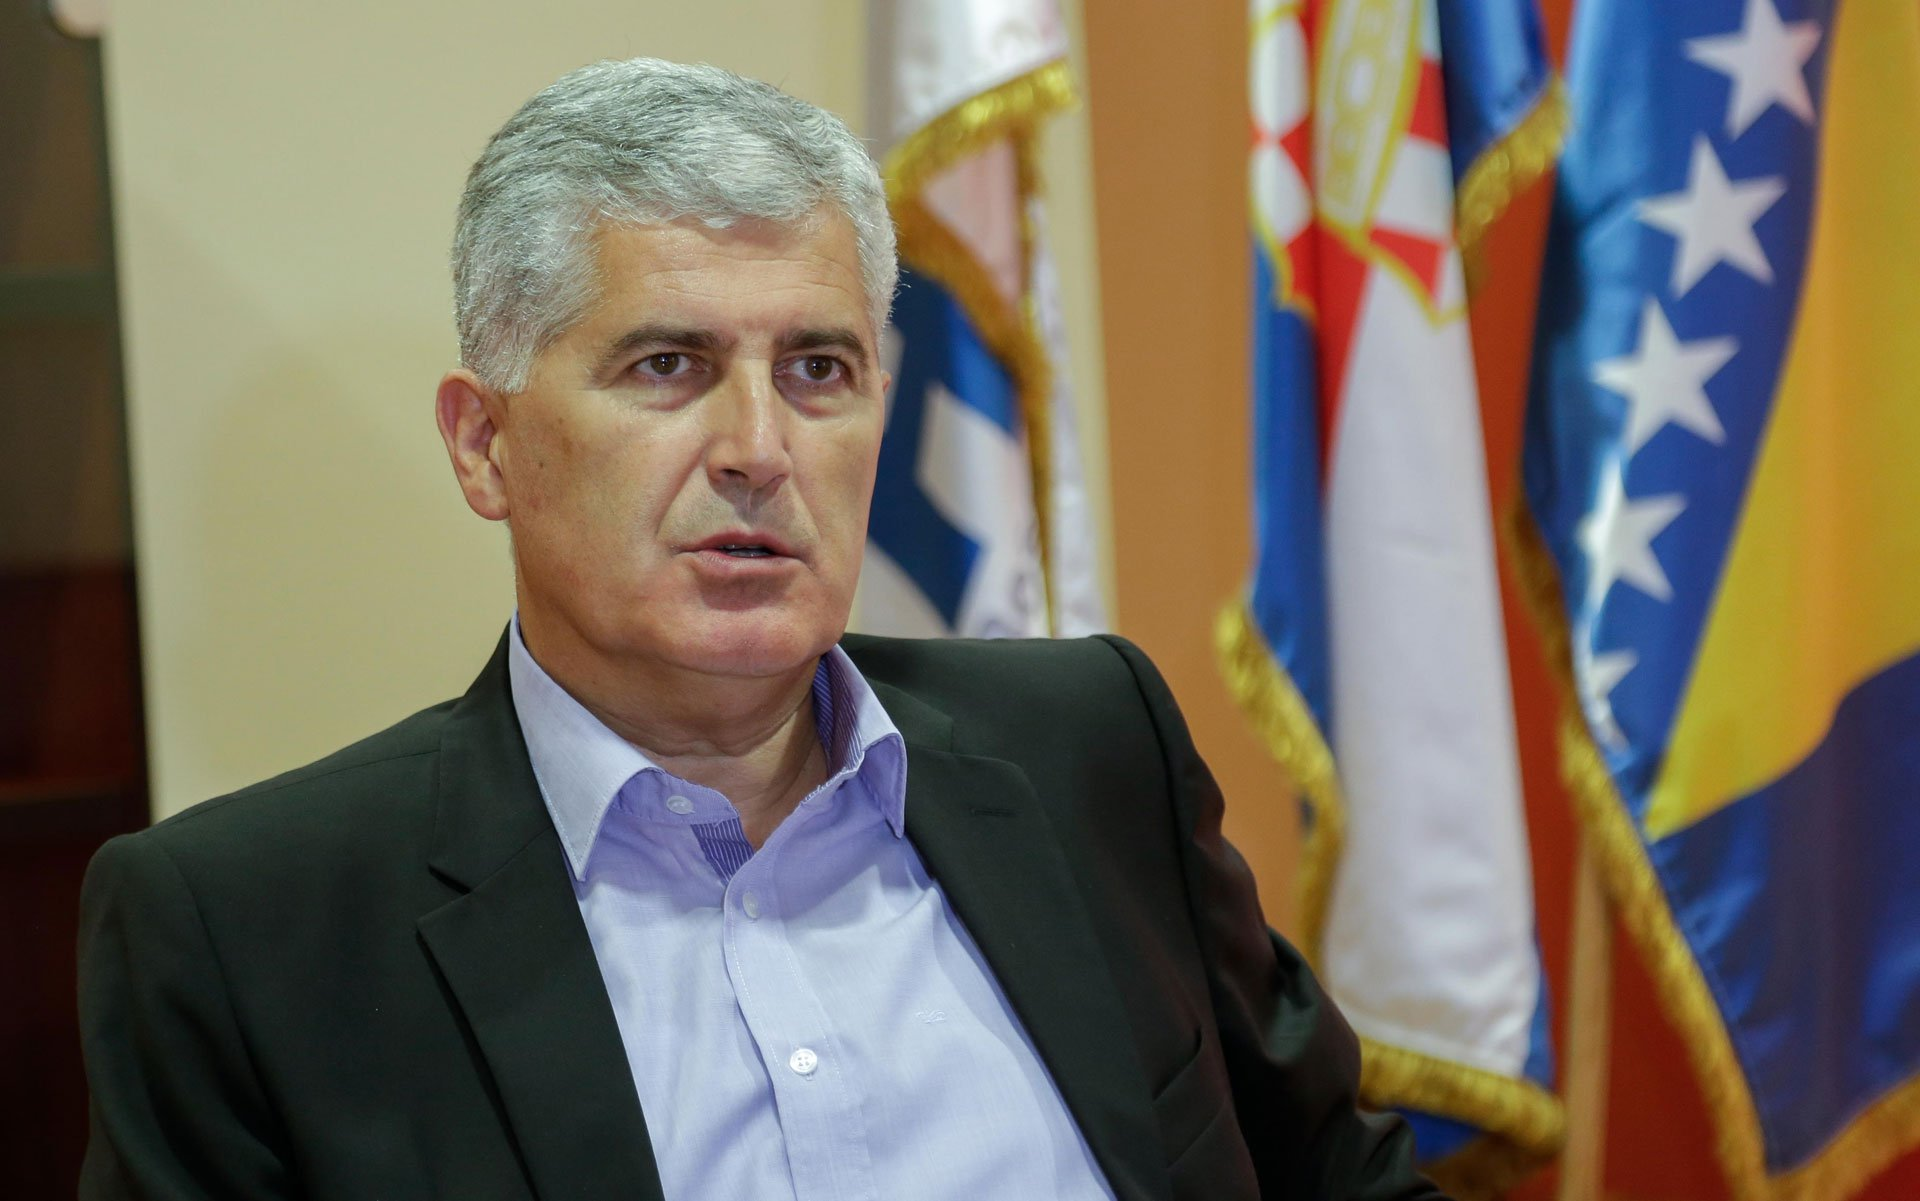 Newly elected President of Croatian National Parliament and President of HDZ political party (Croatian Democratic Union) Dragan Covic listens during a news conference after a meeting in Mostar April 19, 2011. Bosnian Croat major political parties meet in the ethnically-divided southern town of Mostar to re-establish a national body that will politically coordinate Croat-dominated regions of Bosnia, a move seen as the first step towards a Croat autonomy in Bosnia. More than 15 years after the 1992-95 war, Bosnia's three ethnic groups seem to have ever distant visions of the country's future, with Serb and Croat nationalists calling for separate statelets in a decentralised country and Muslims favouring a united Bosnia. REUTERS/Dado Ruvic (BOSNIA AND HERZEGOVINA - Tags: POLITICS)